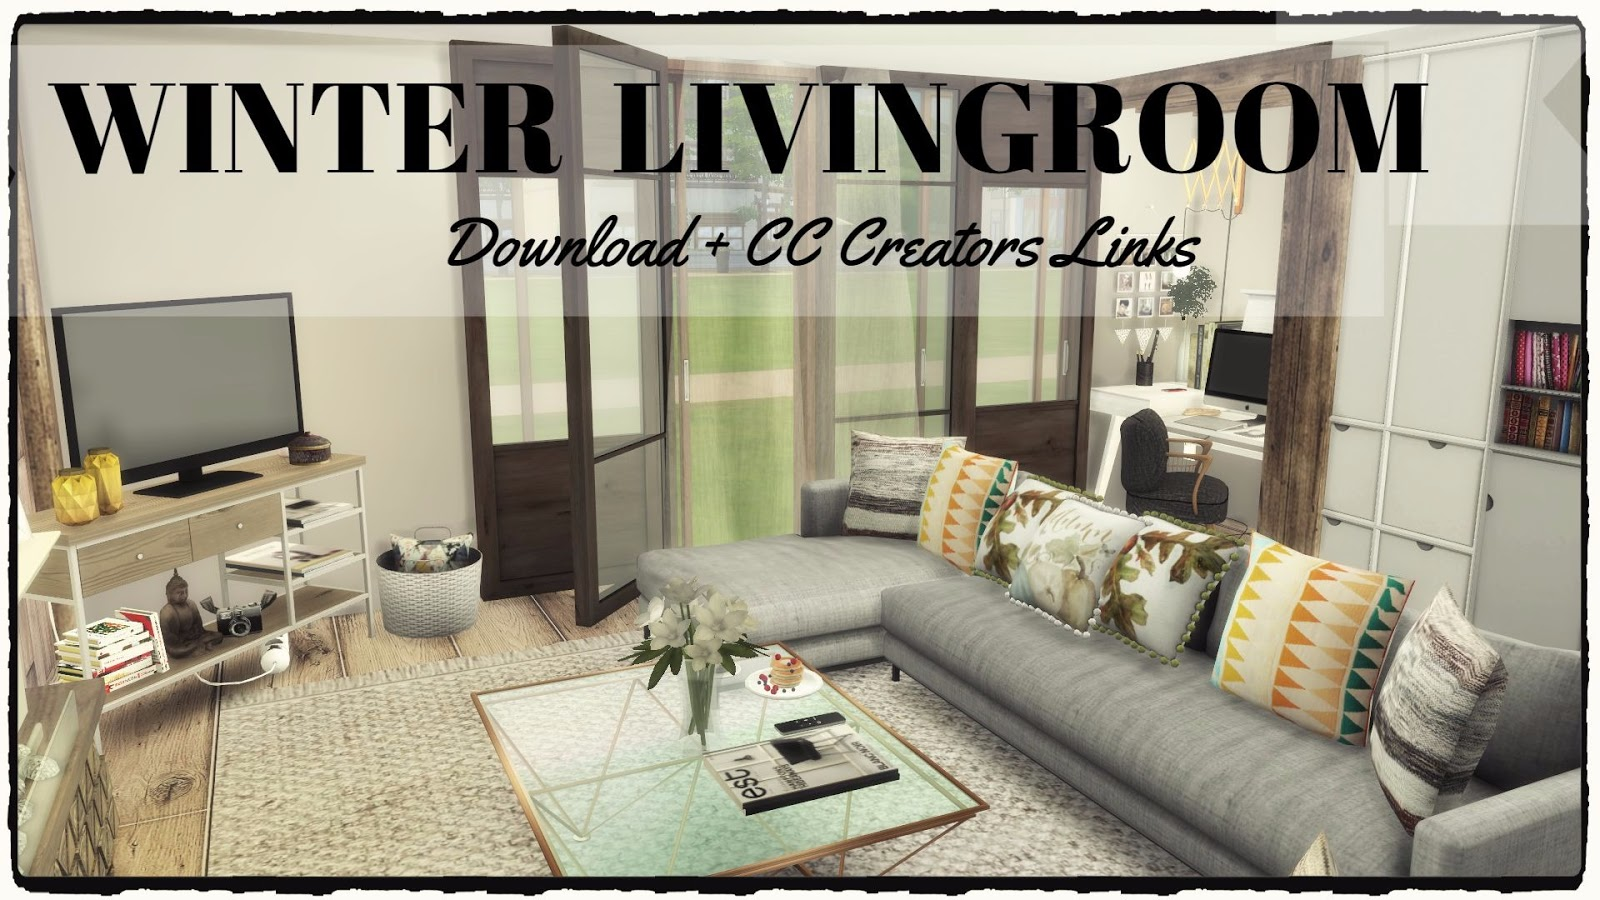 Sims 4 winter livingroom download cc creators links for Sims 4 living room ideas